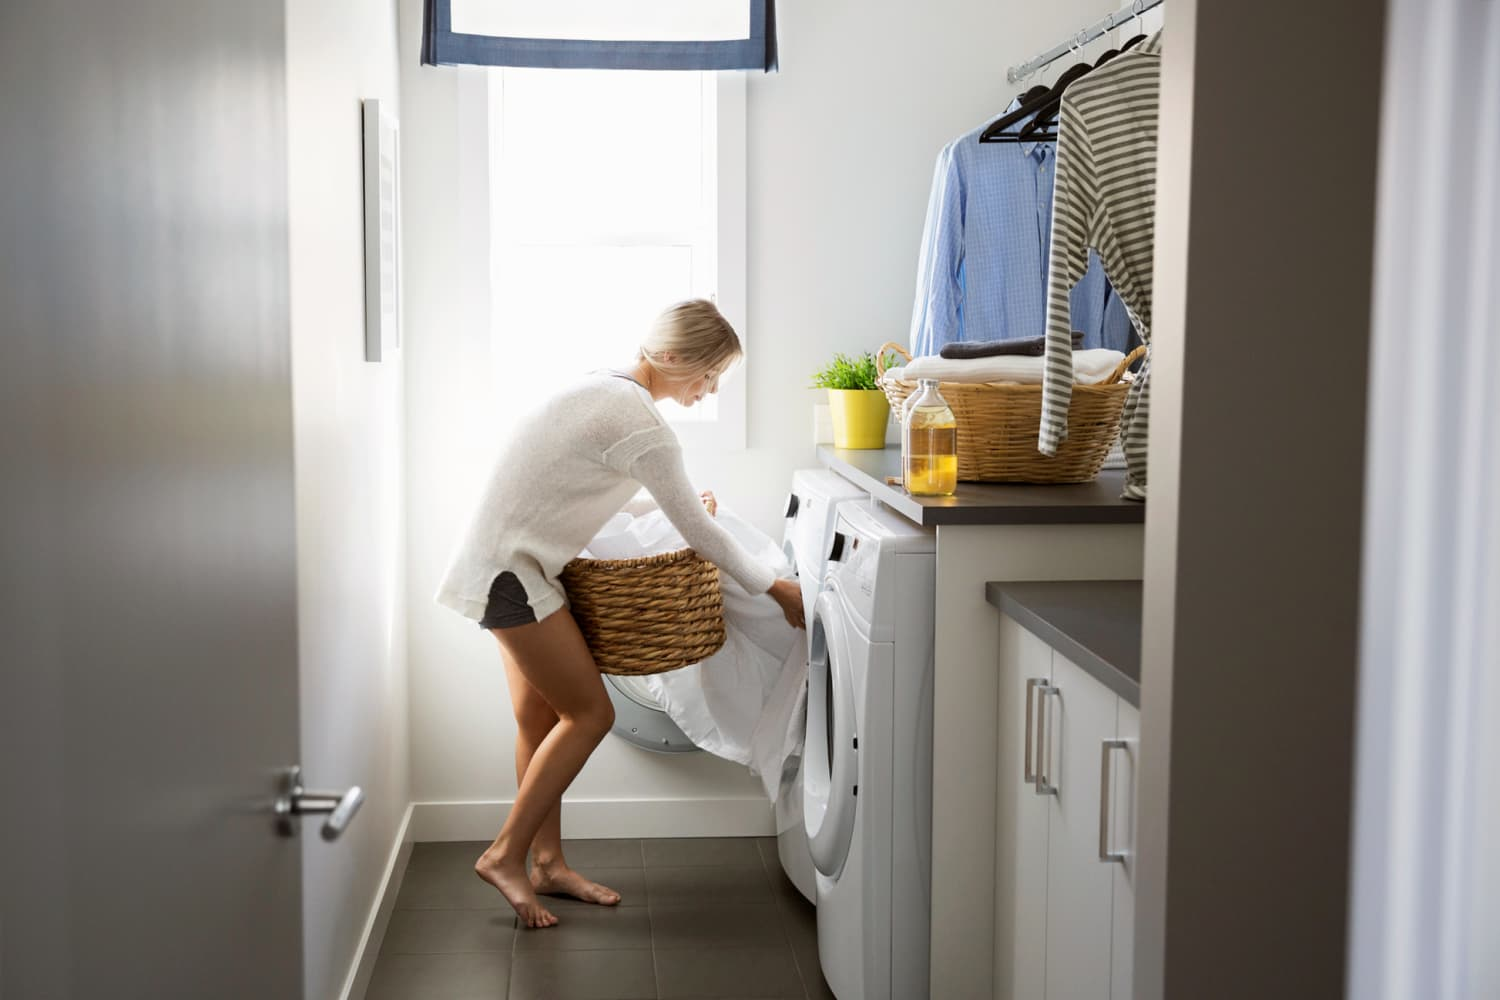 7 Laundry Hampers That Make the Most of Your Small Space